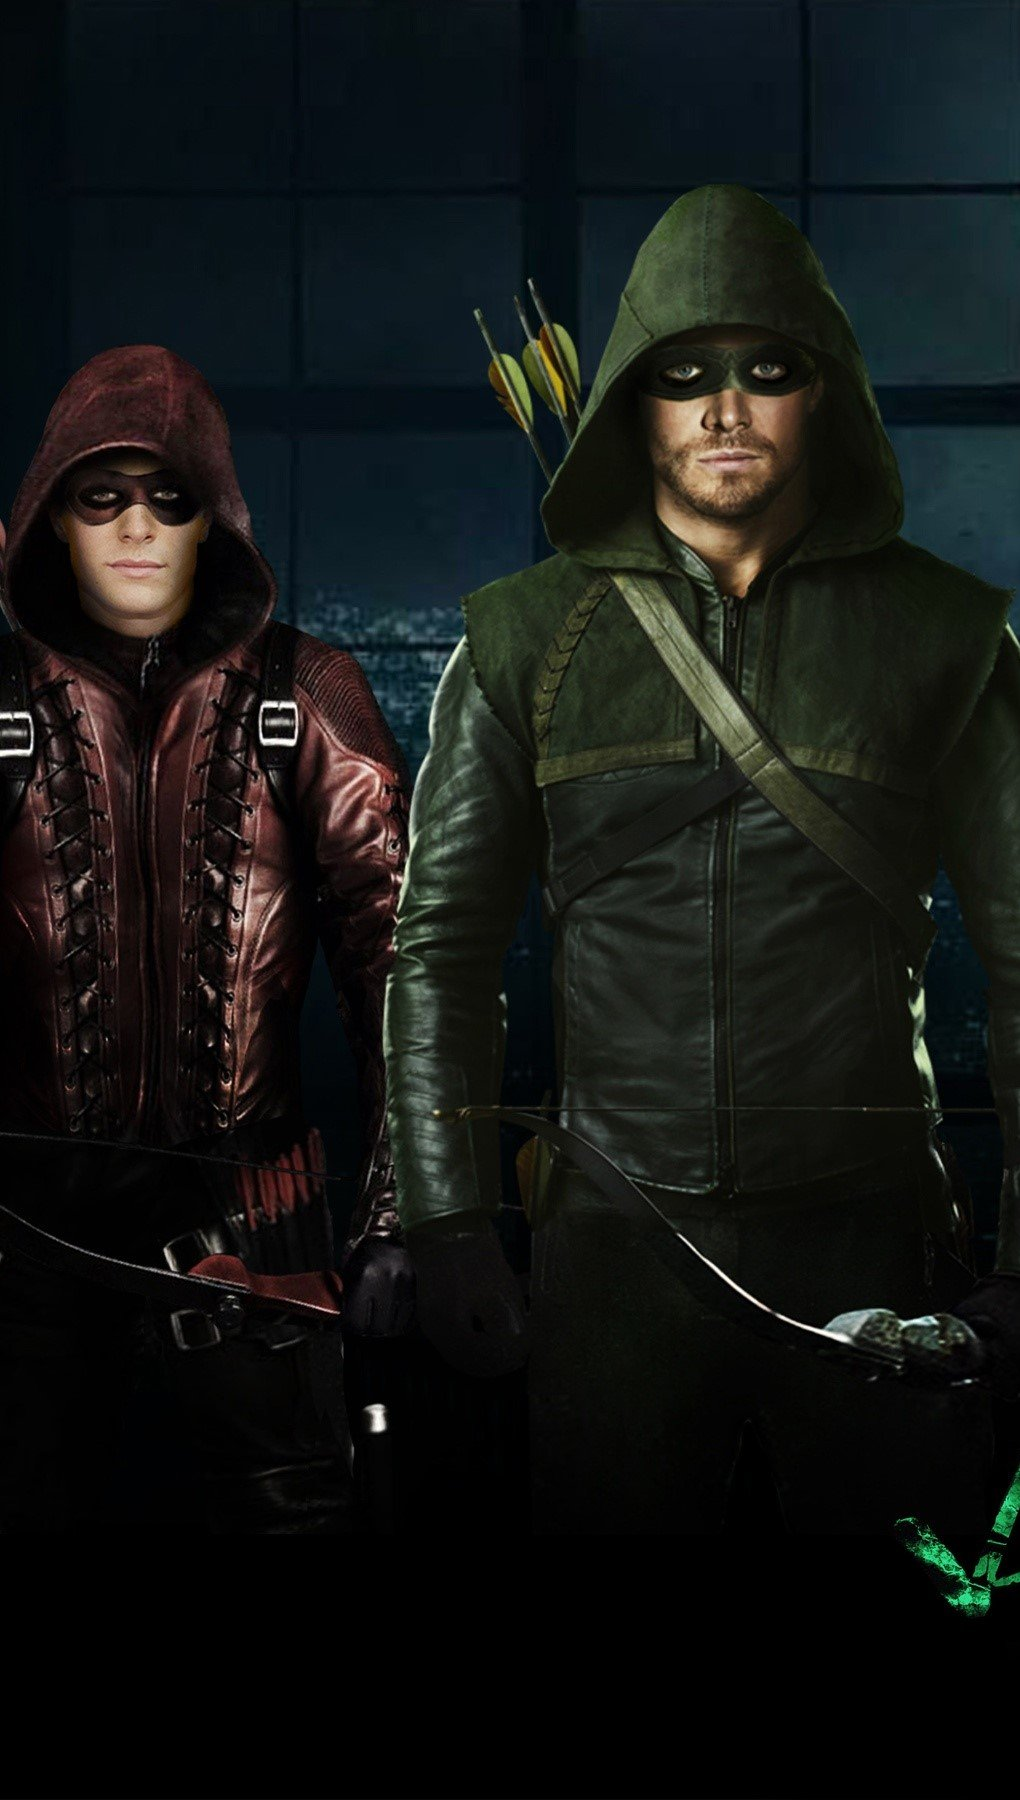 Wallpaper Arrow in Season 3 Vertical